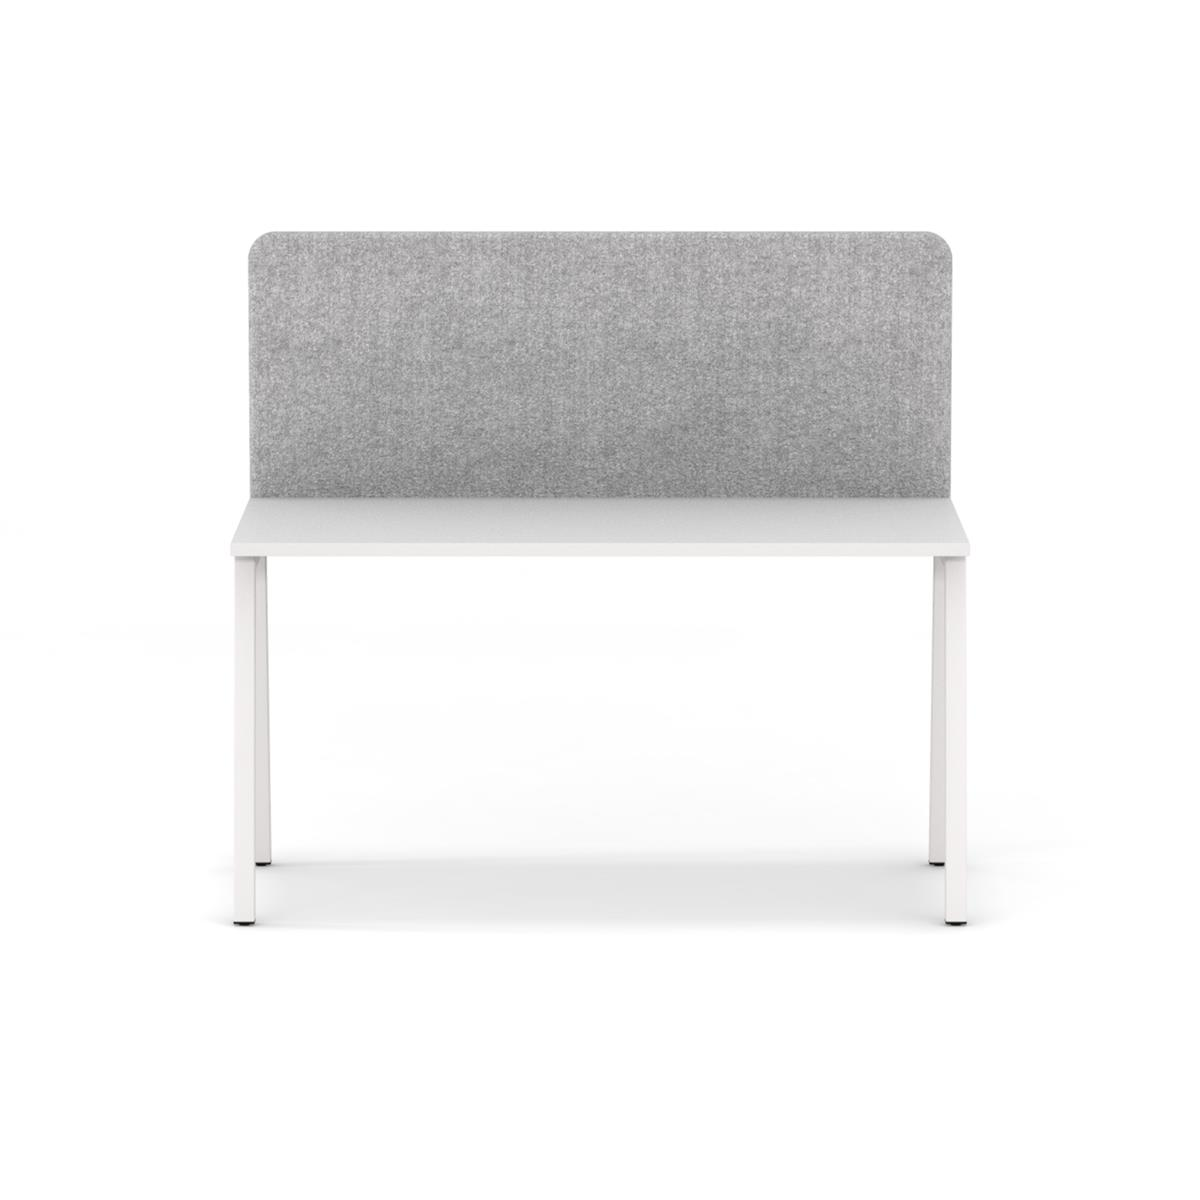 UM Acoustic Screen 140 x H53 - tekstil Camira Synergy